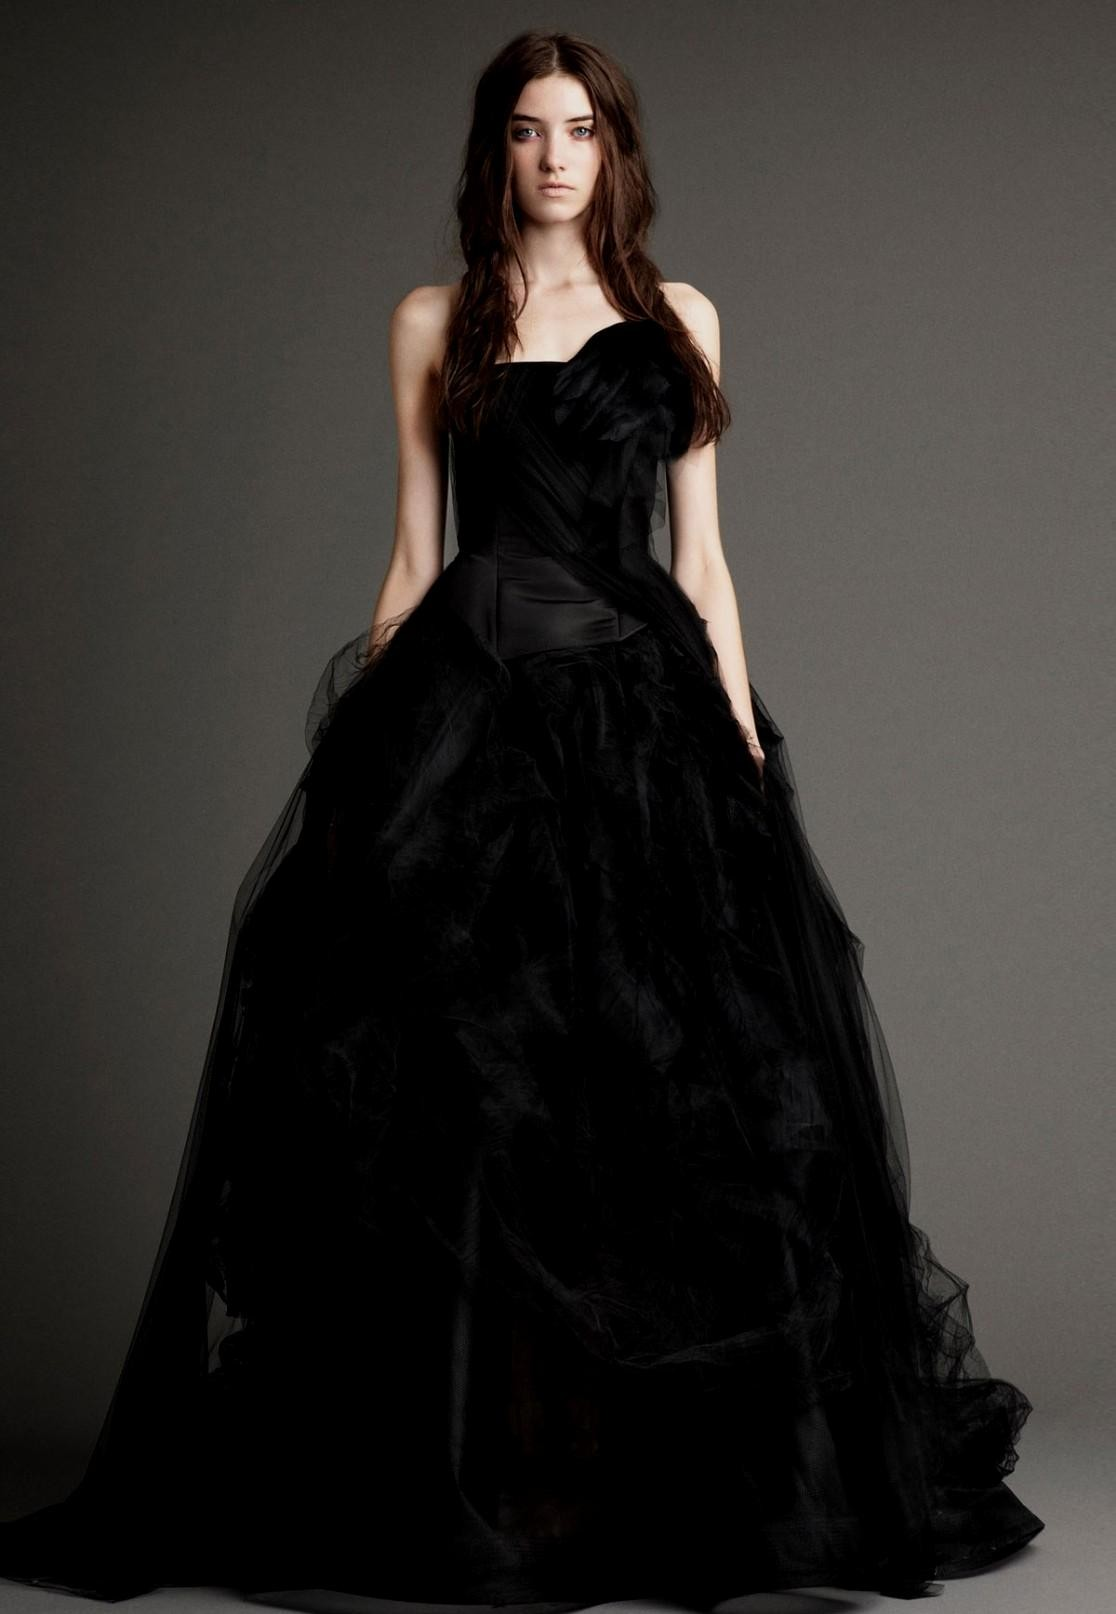 A black wedding dress